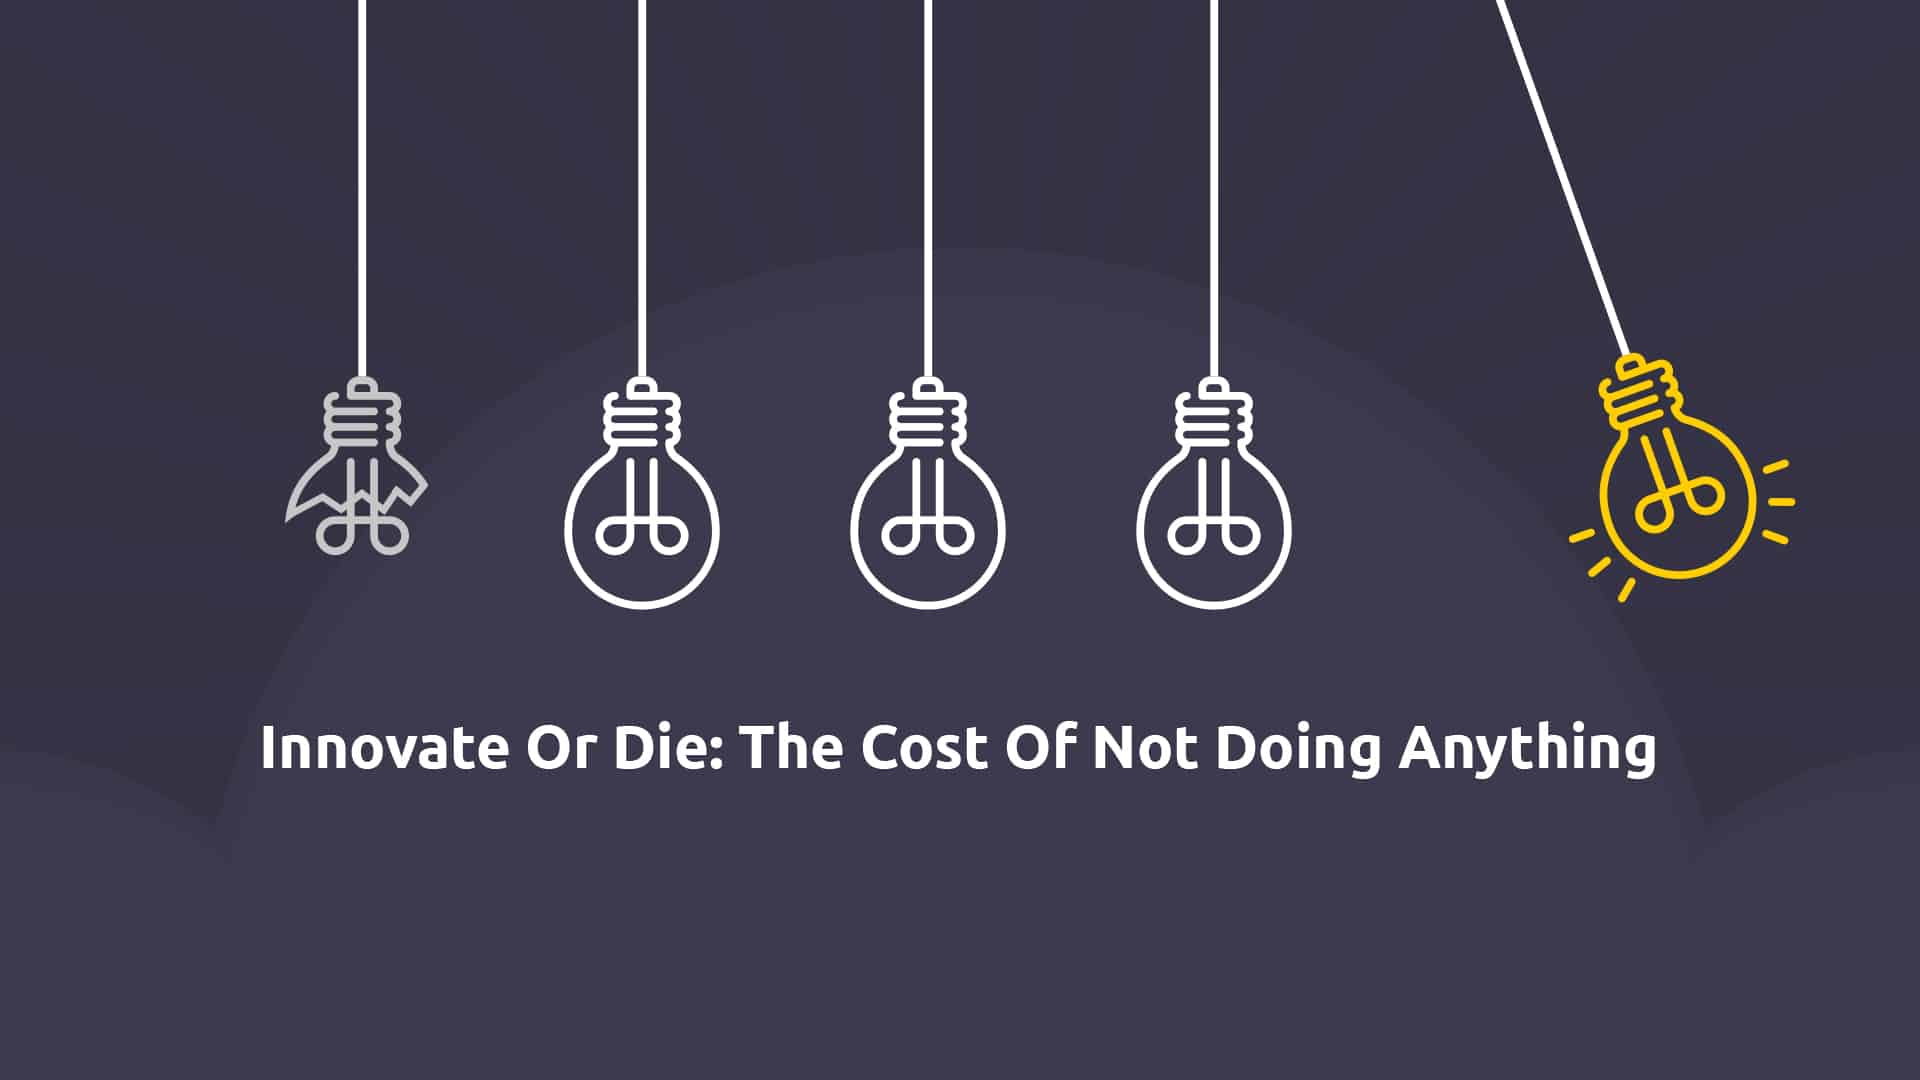 innovate, collaborate or die